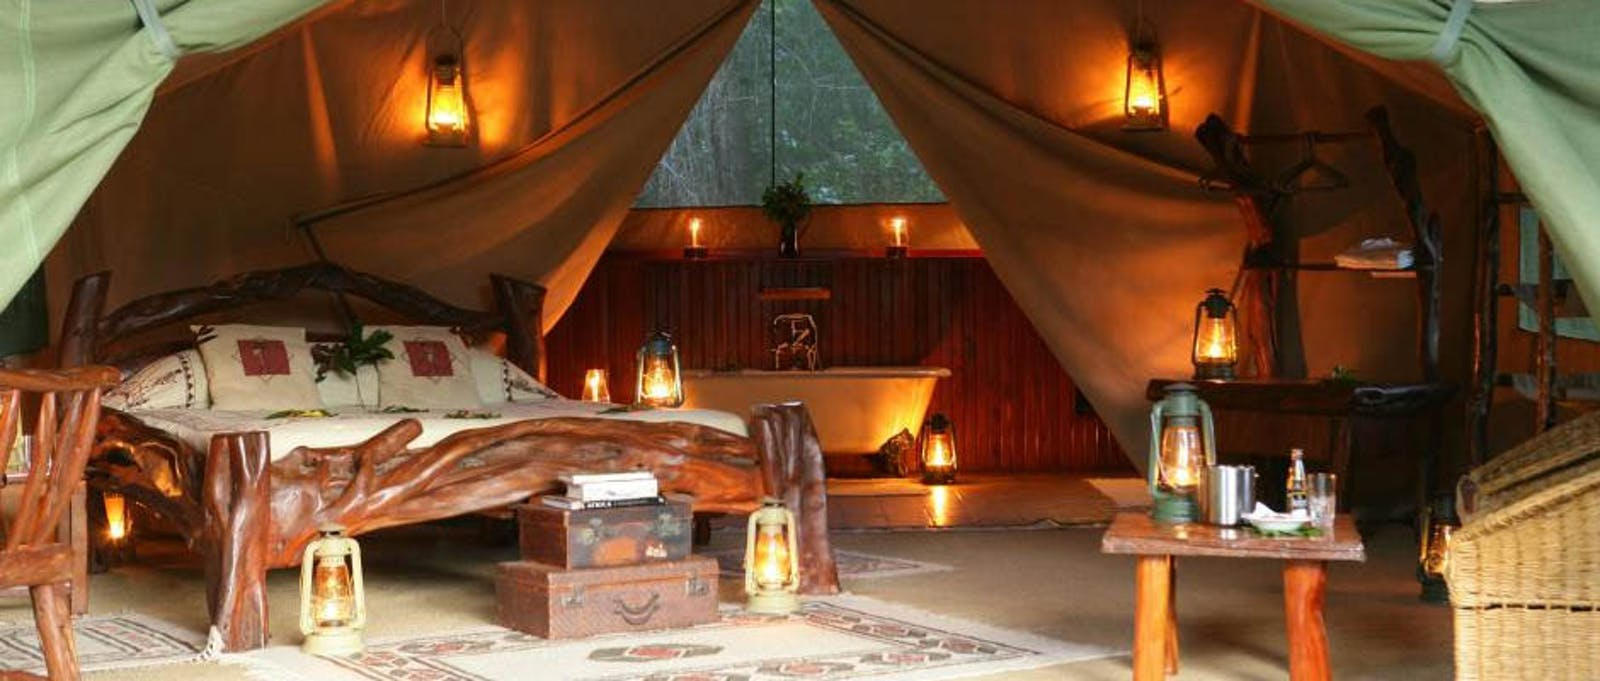 Luxury En-suite at Governors' Il Moran Camp, Kenya